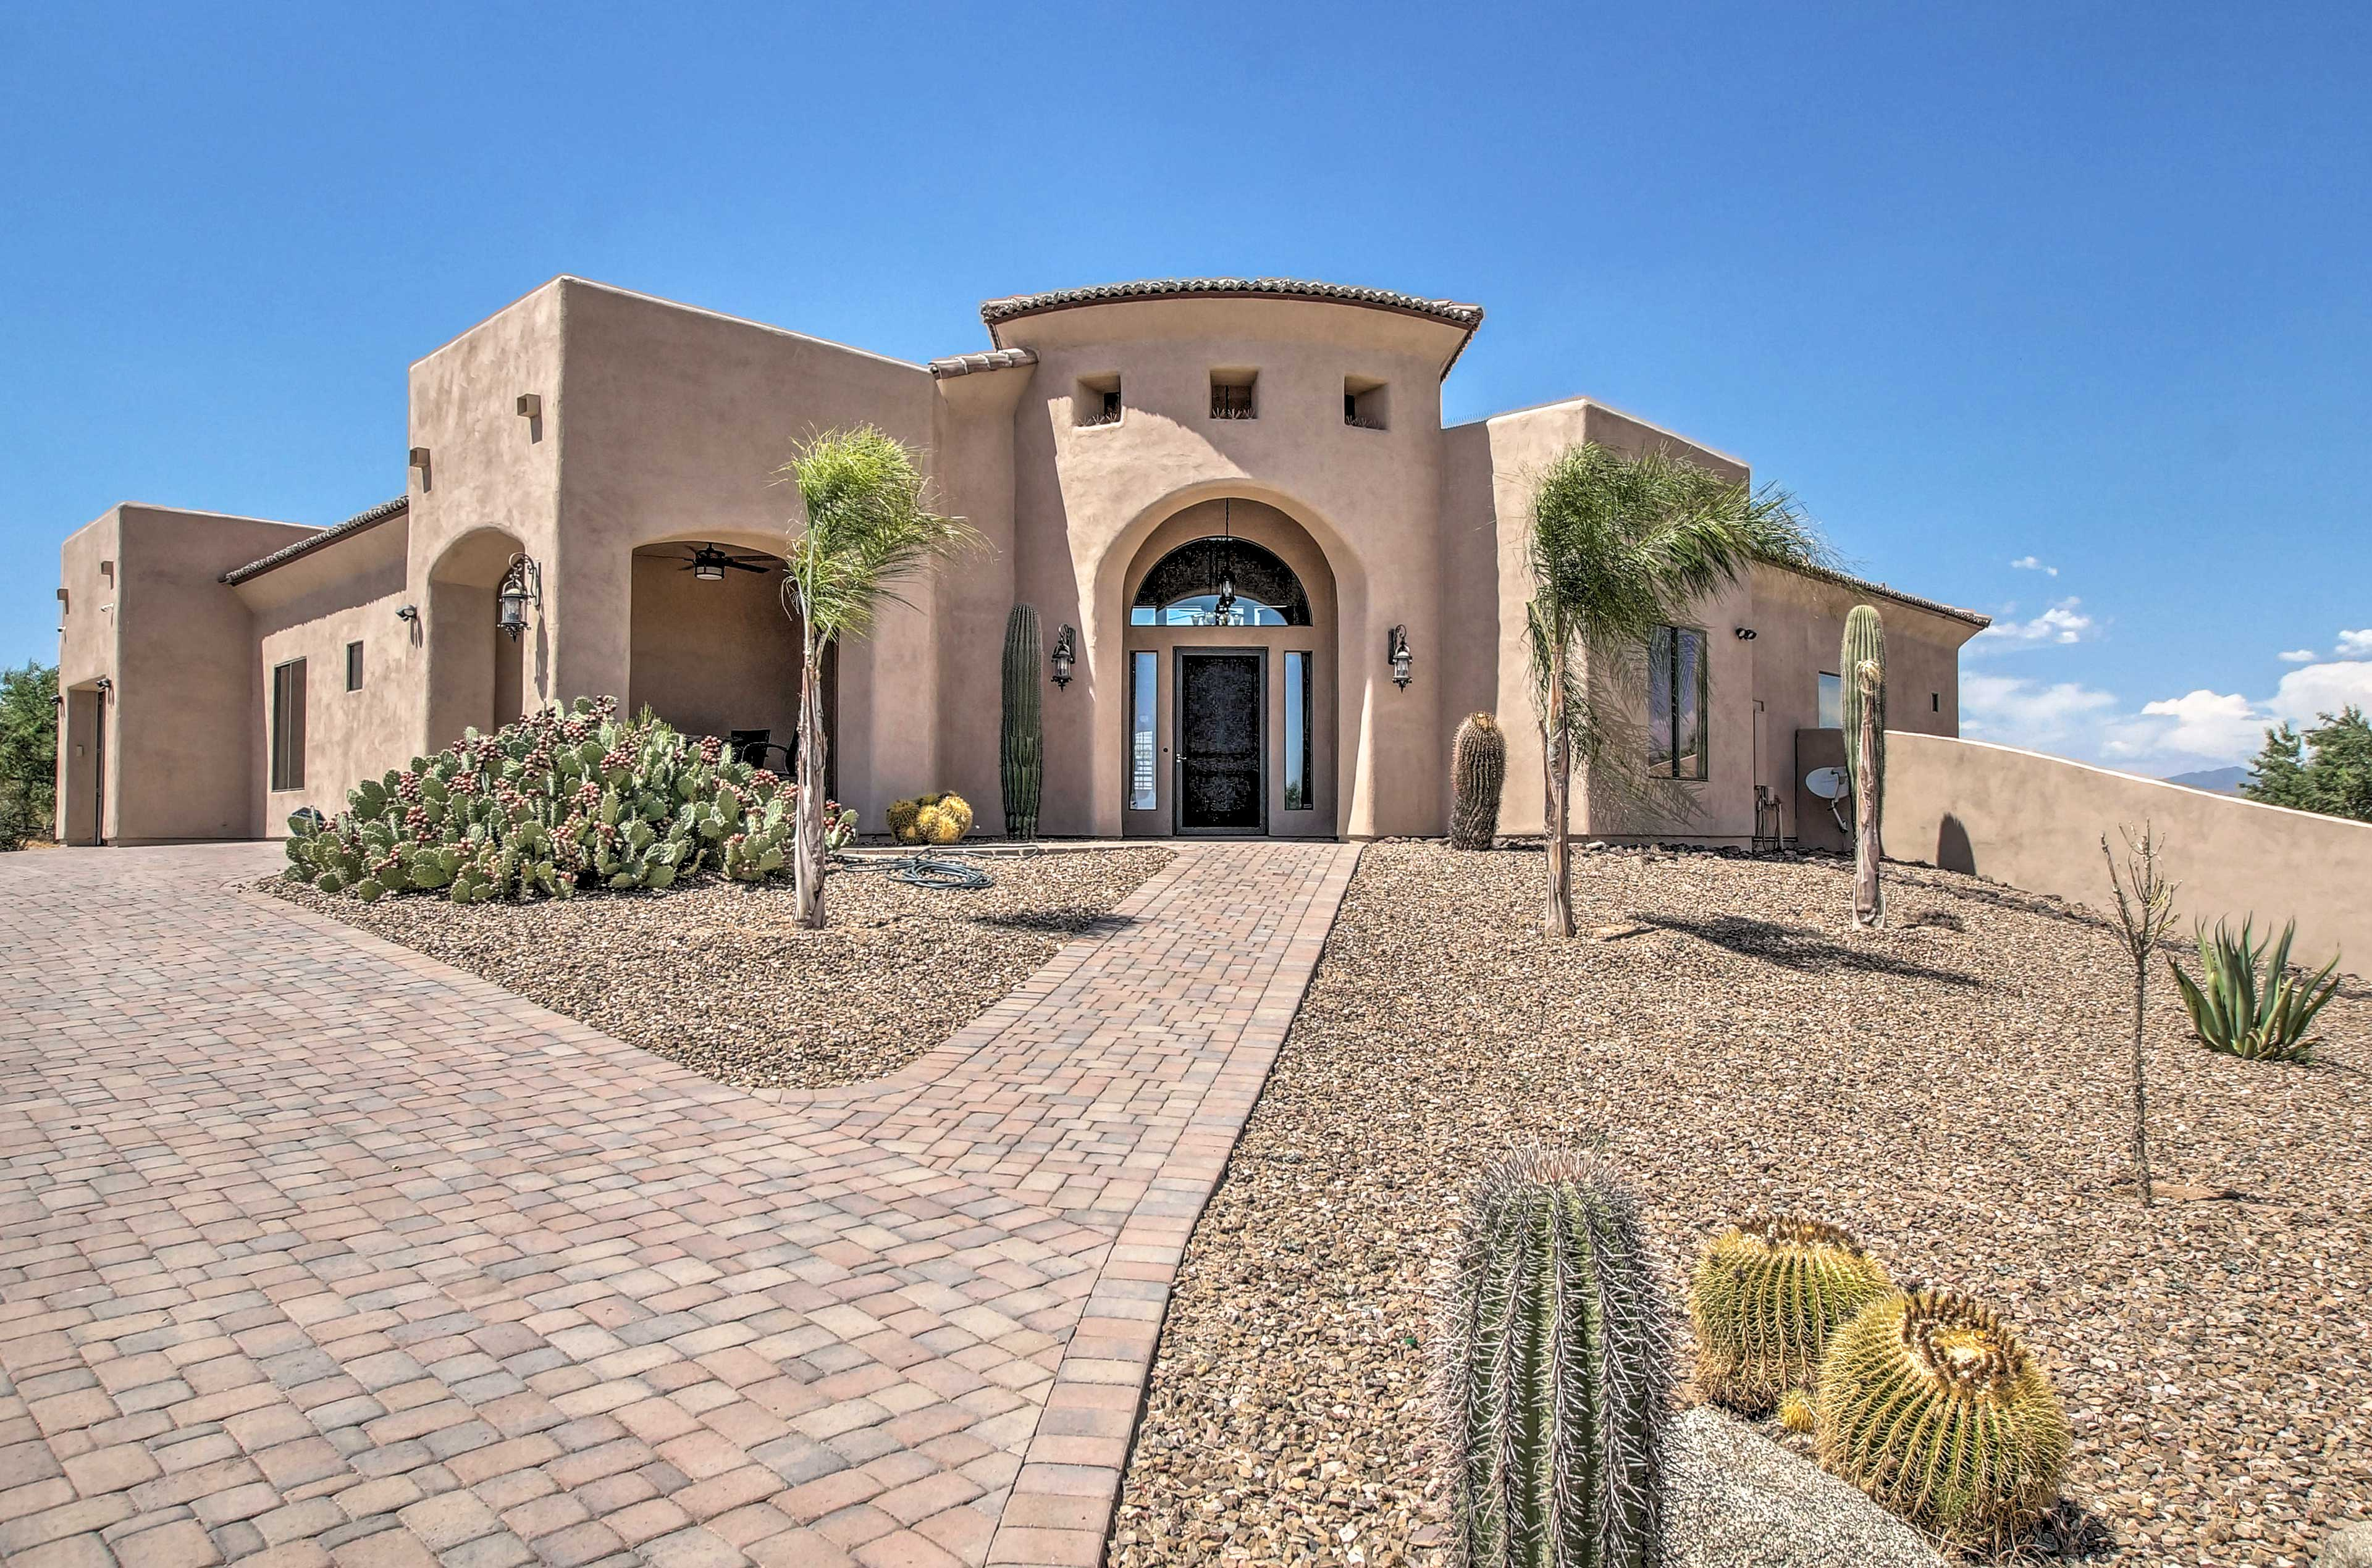 This beautiful home is calling your name!